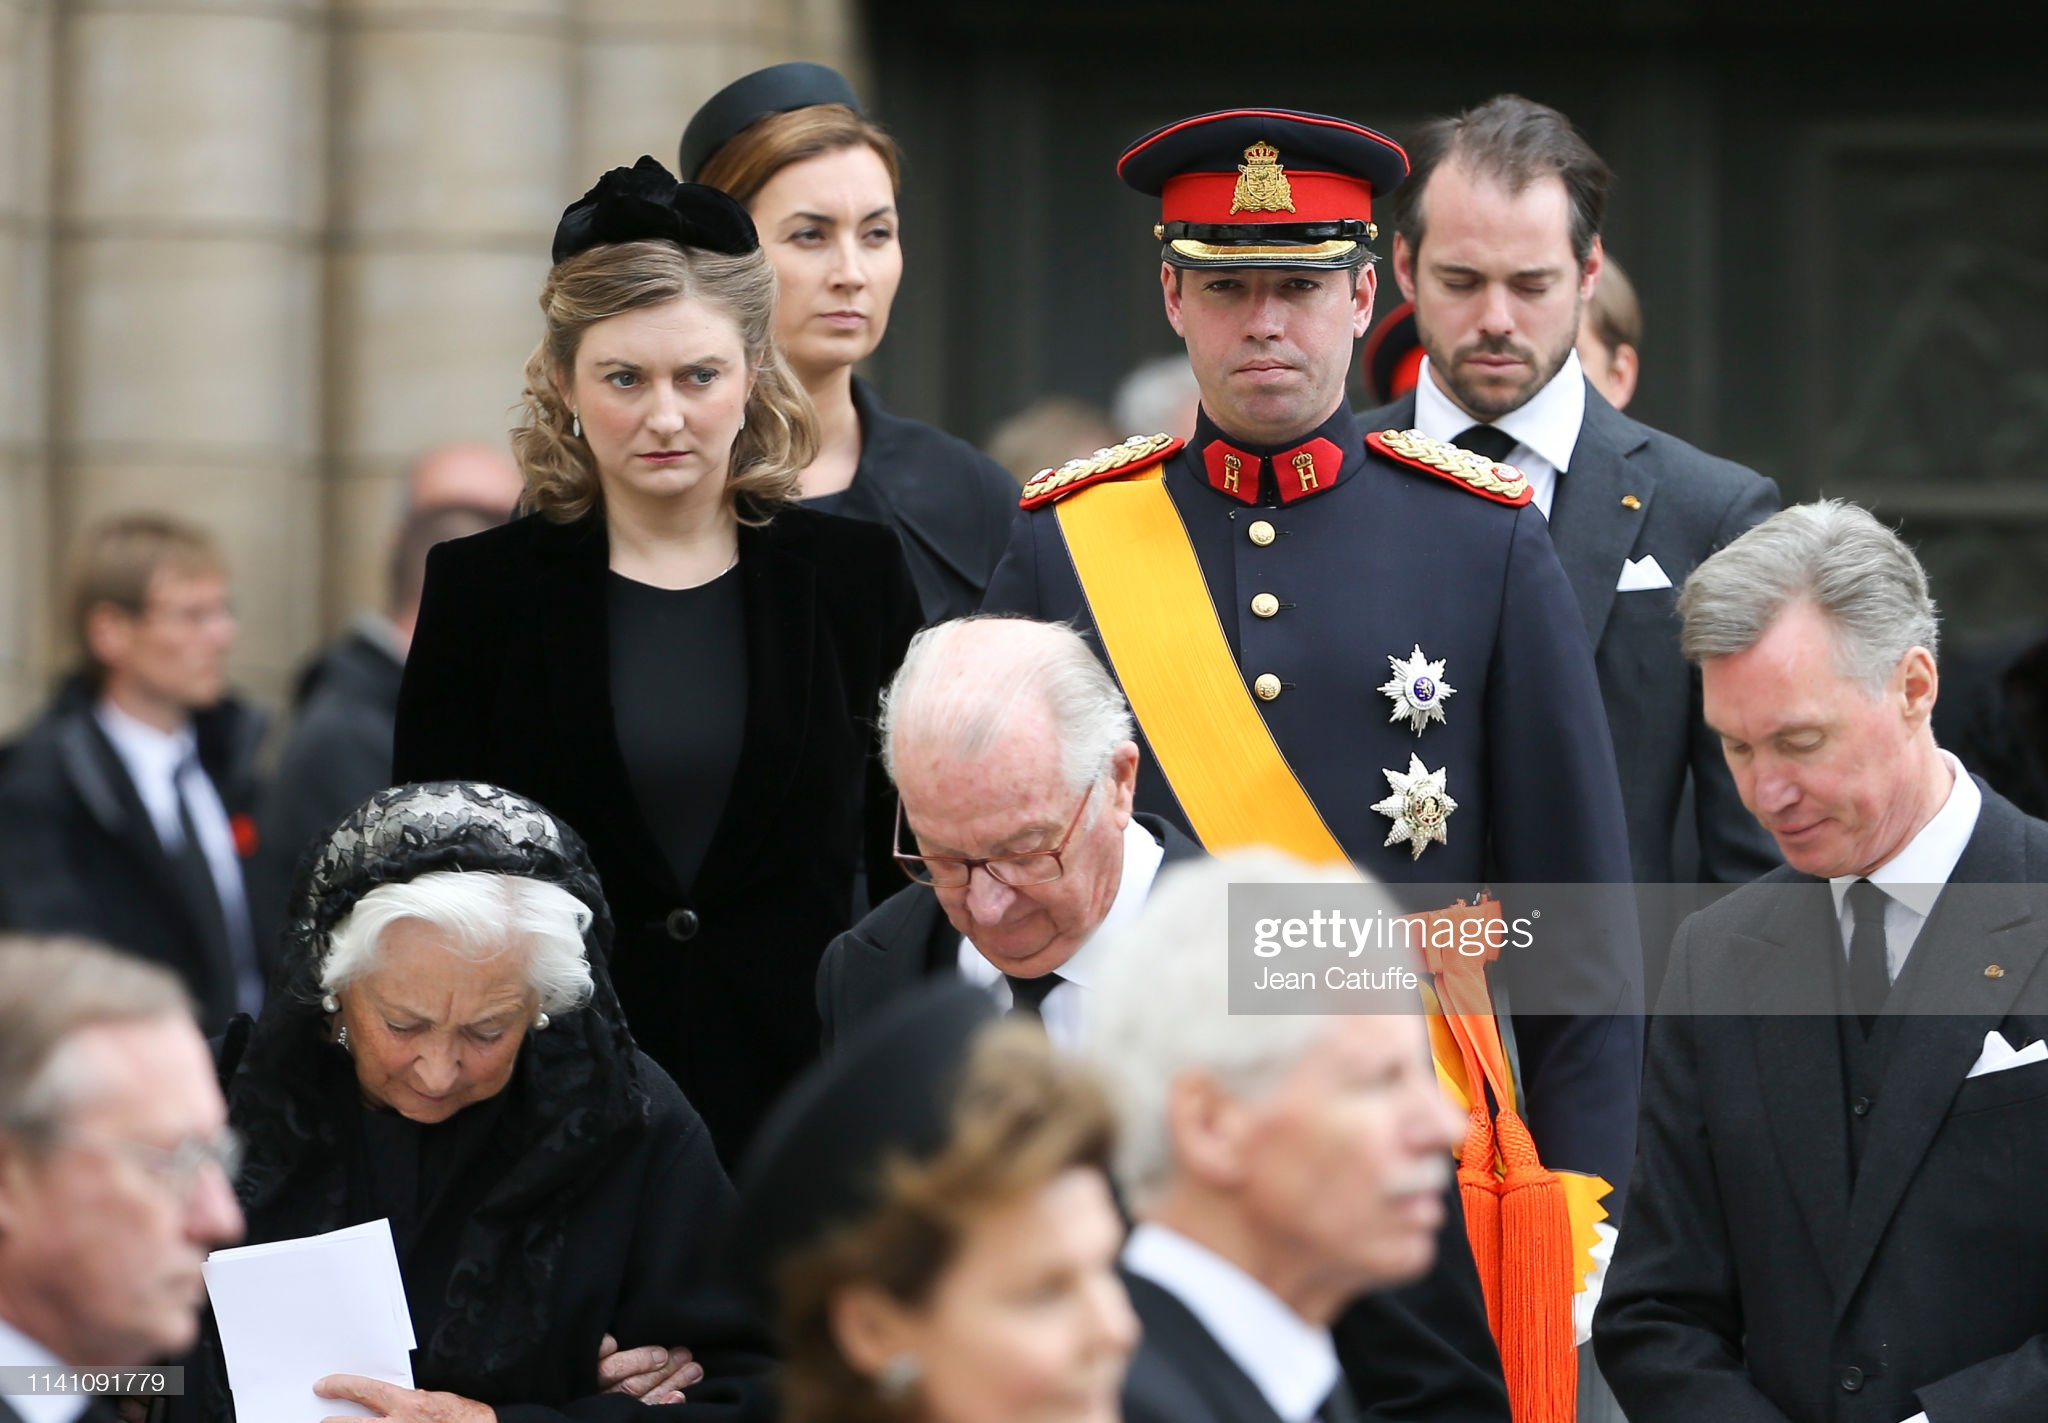 https://media.gettyimages.com/photos/guillaume-hereditary-grand-duke-of-luxembourg-and-his-wife-stephanie-picture-id1141091779?s=2048x2048